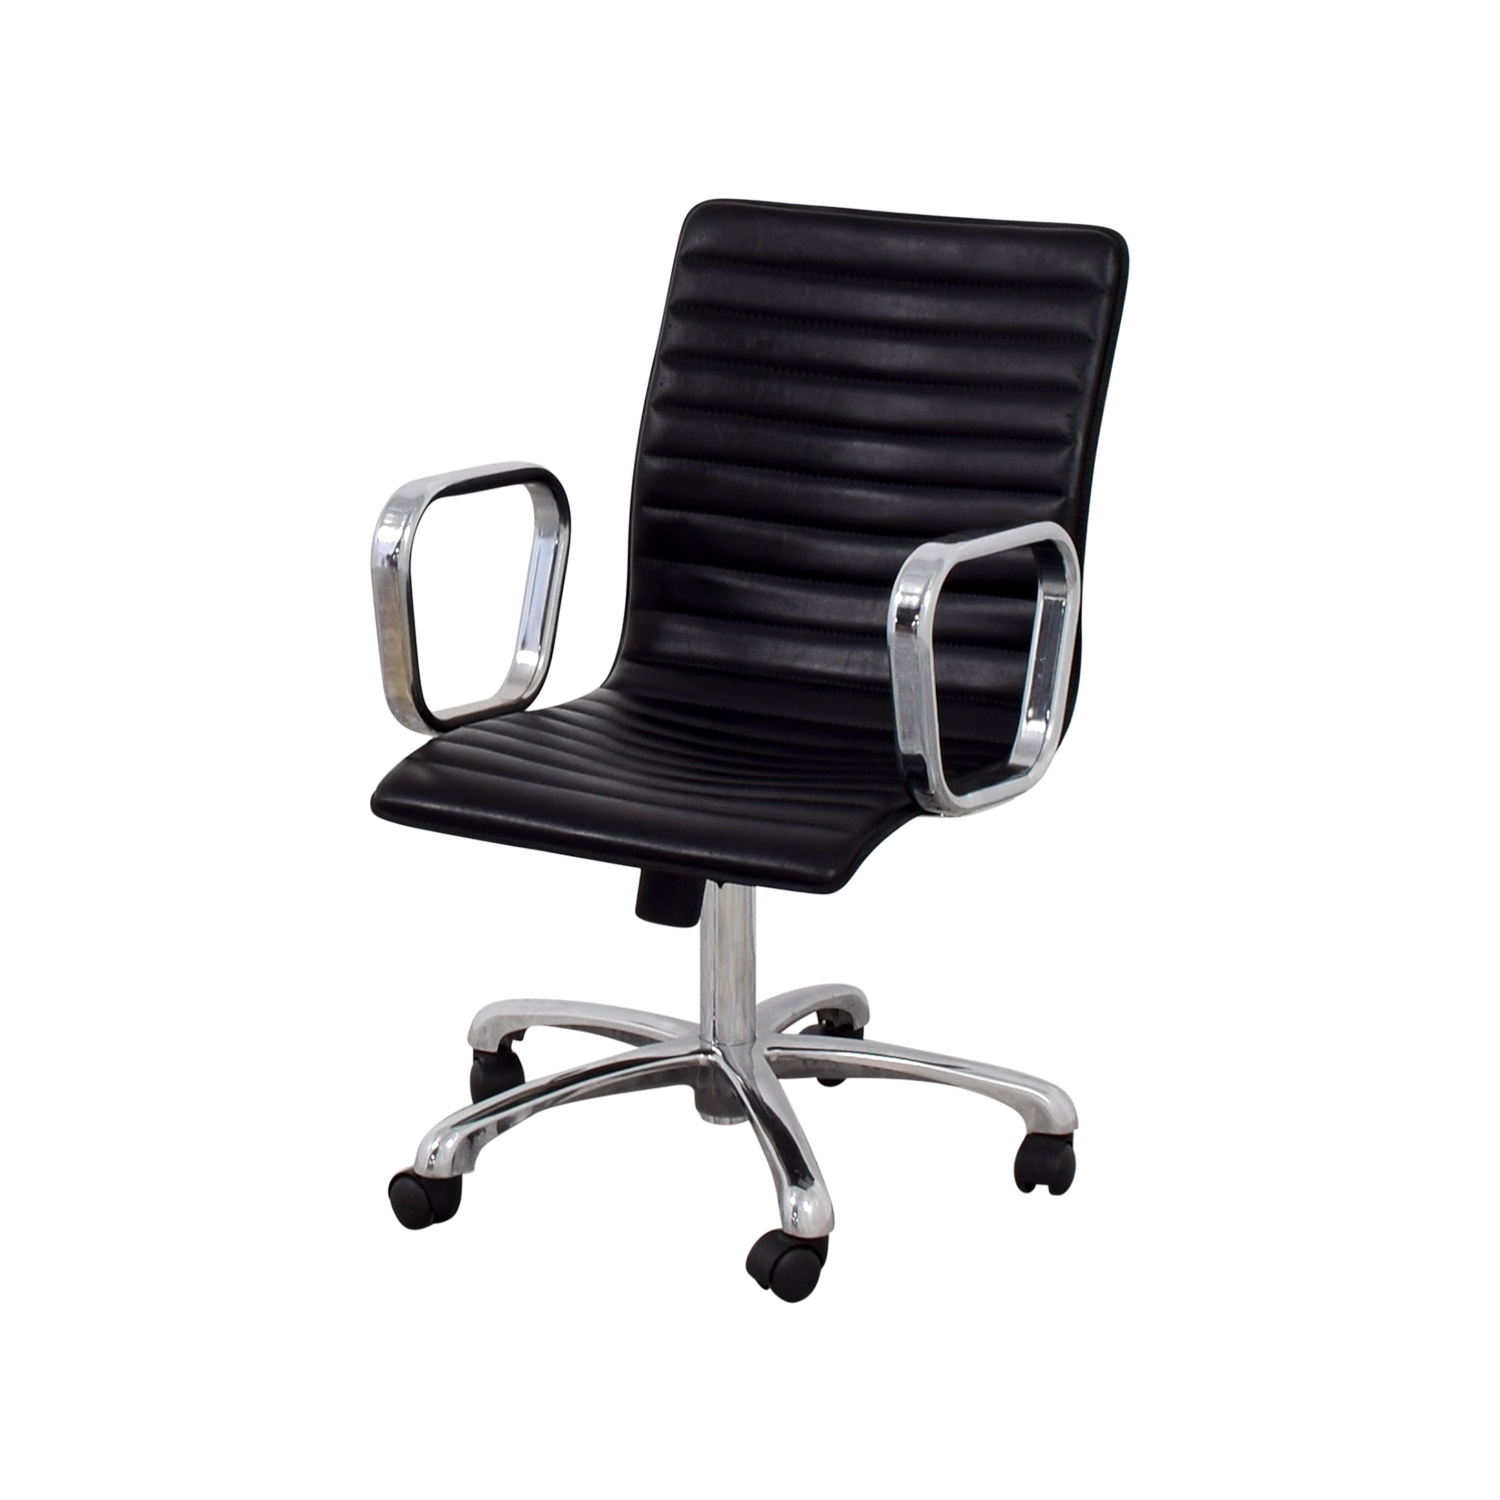 buy Crate & Barrel Ripple Leather Office Chair Crate & Barrel Home Office Chairs